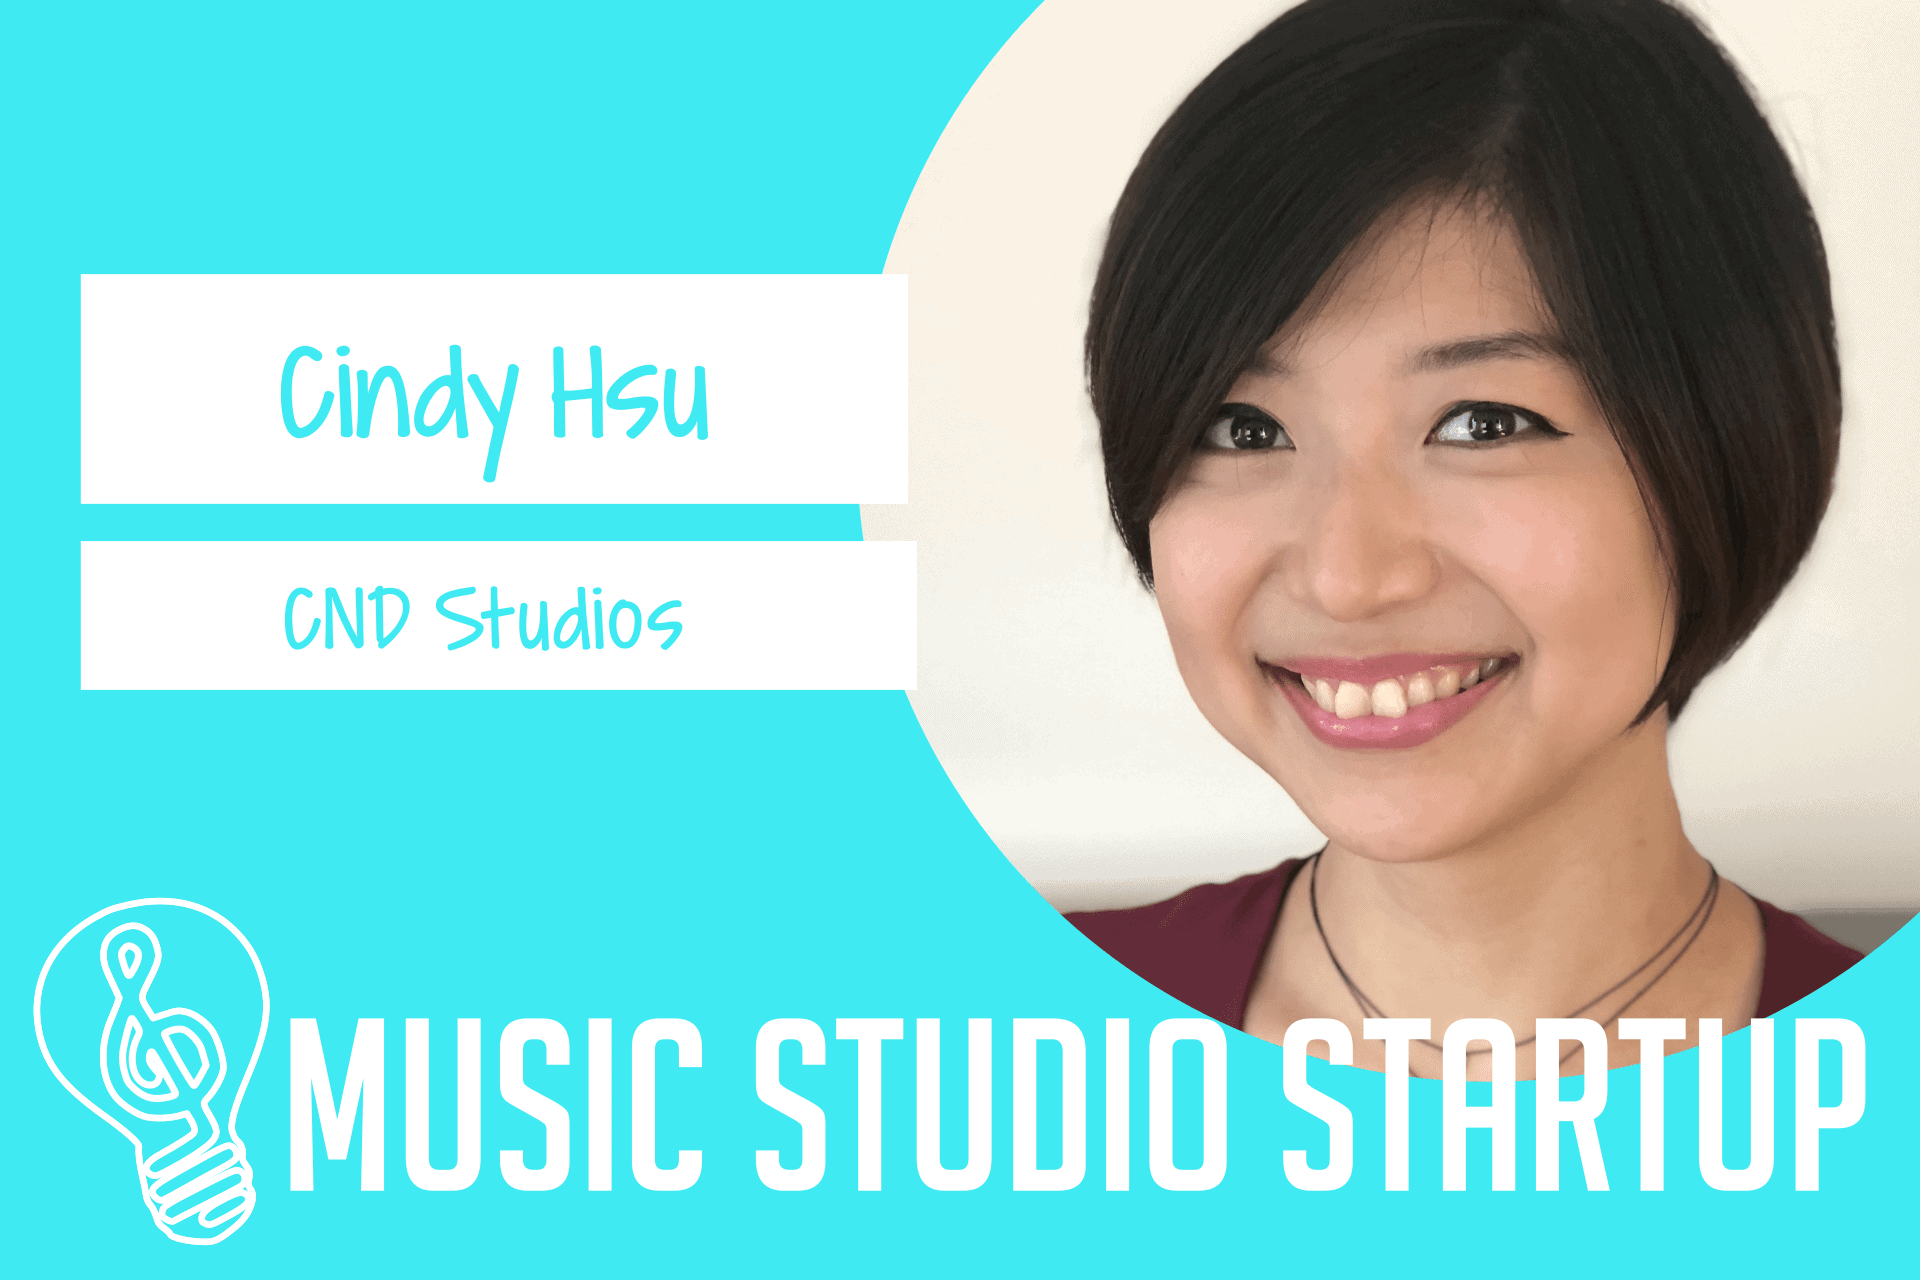 Episode 020 – Cindy Hsu on Concert Production and Developing an Audience